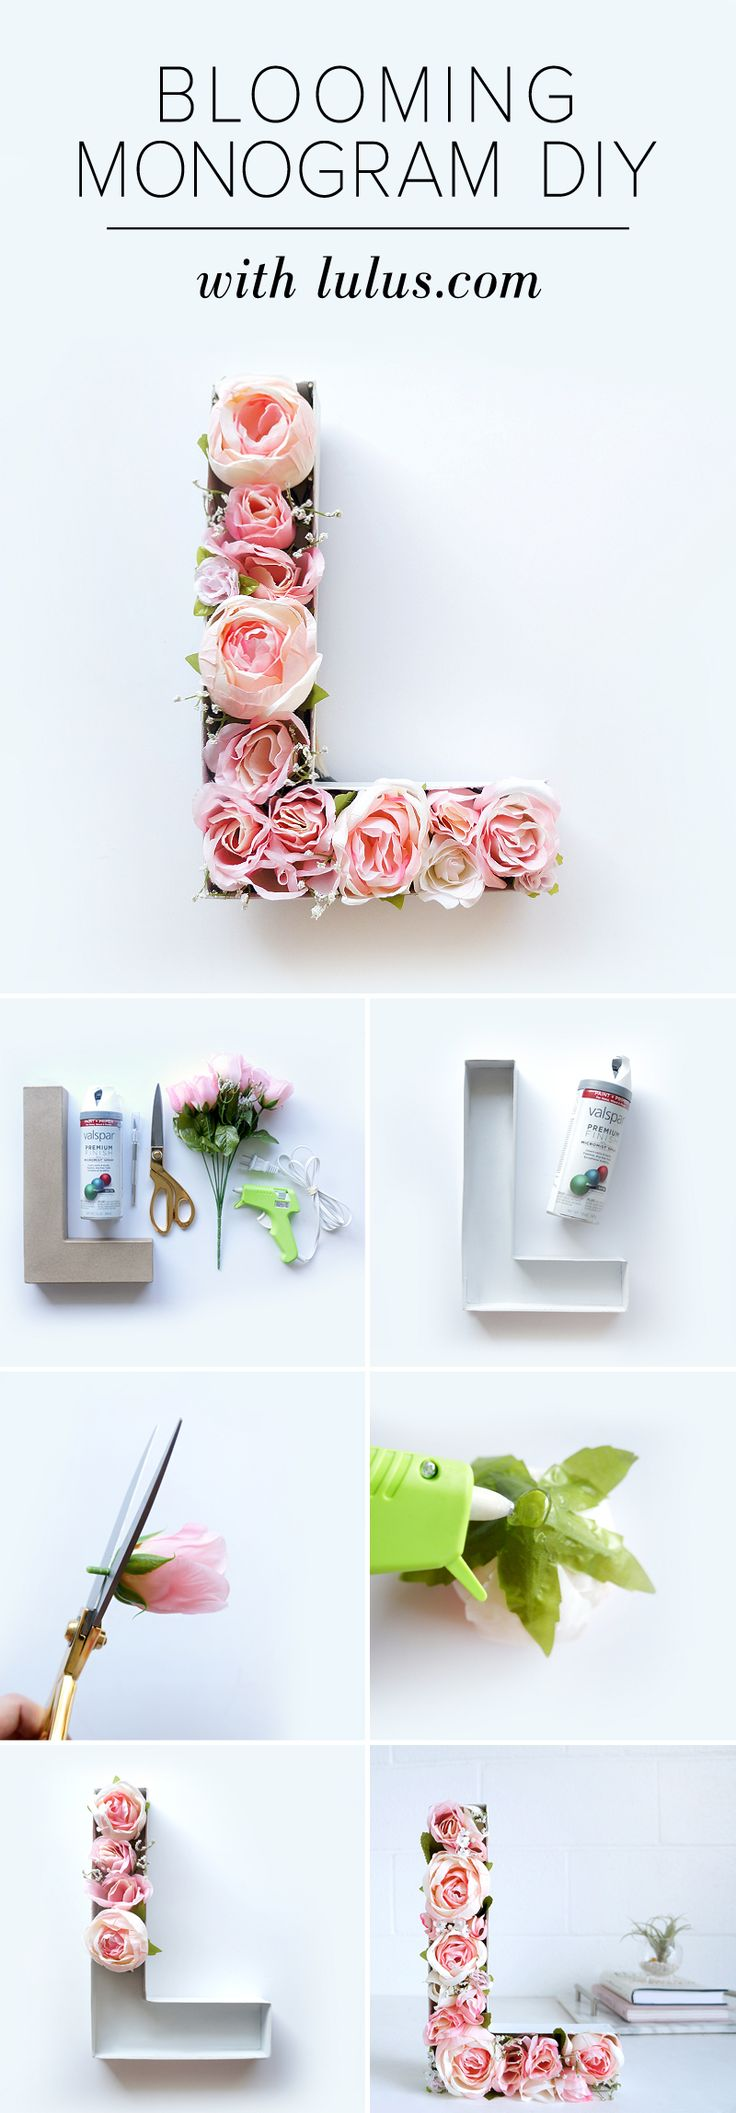 { Blooming monogram } Different faux flowers for each letter to spell out a word.